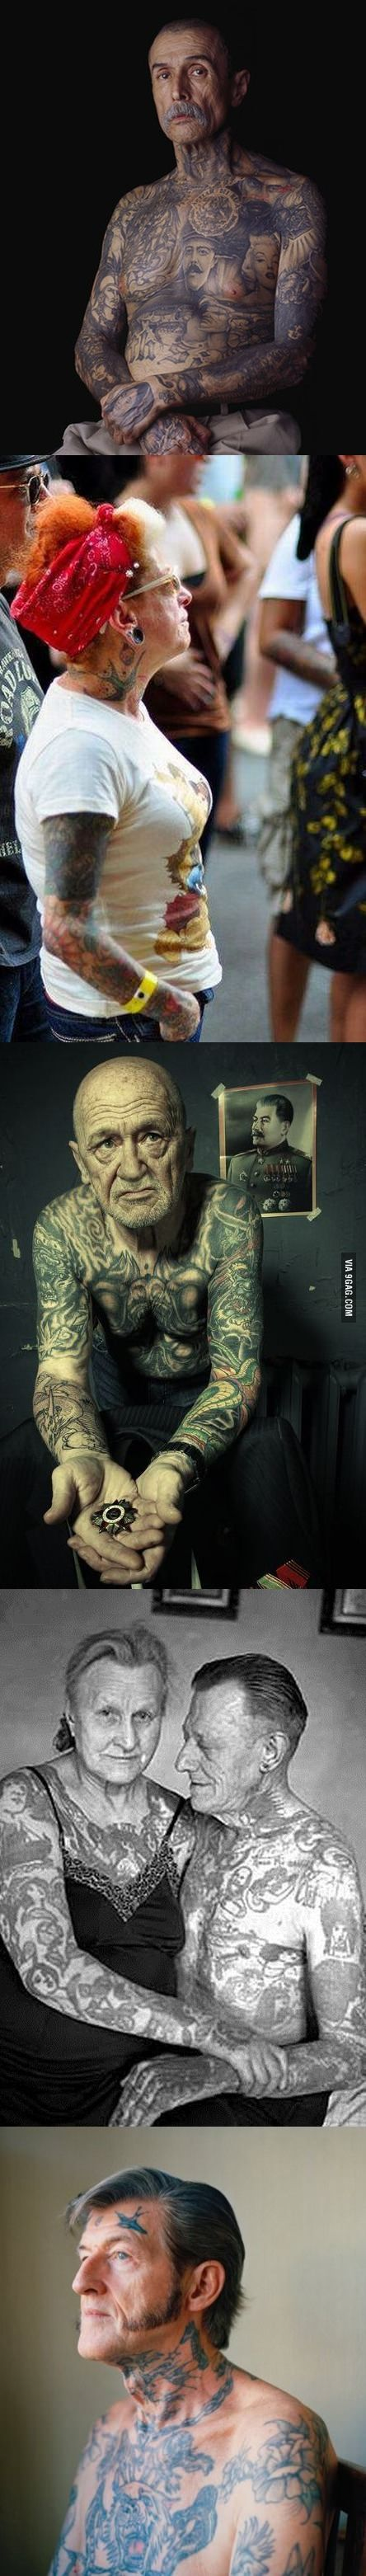 1000 ideas about old tattooed people on pinterest ryan for Tattoos on old saggy skin